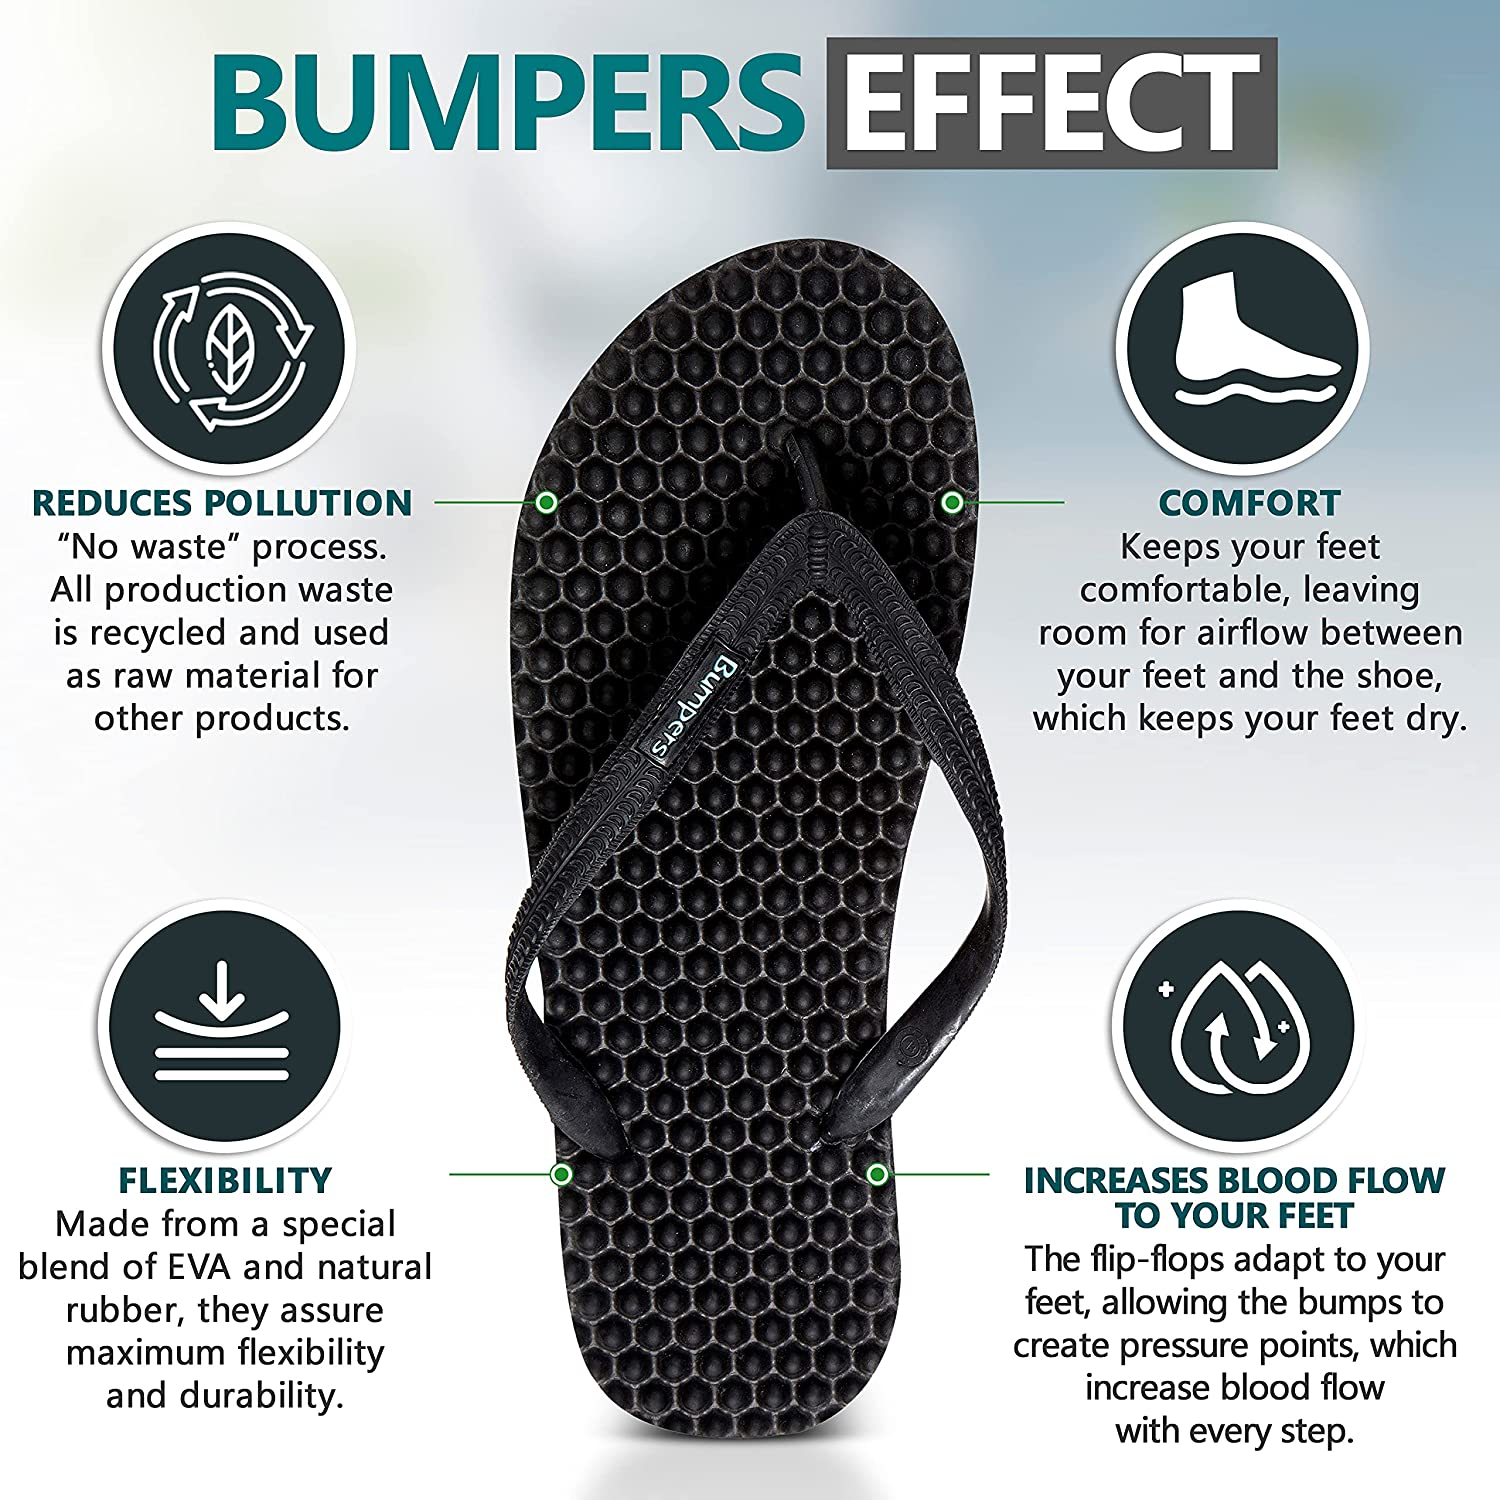 Massage Flip Flops For Men - Comfort Reflexology Footbed for Better Health, Pain Relief, Increase in Circulation & Energy. Relaxation Acupressure Plantar Fasciitis and Recovery Sandals For Men's With Anti-Slipping Sole